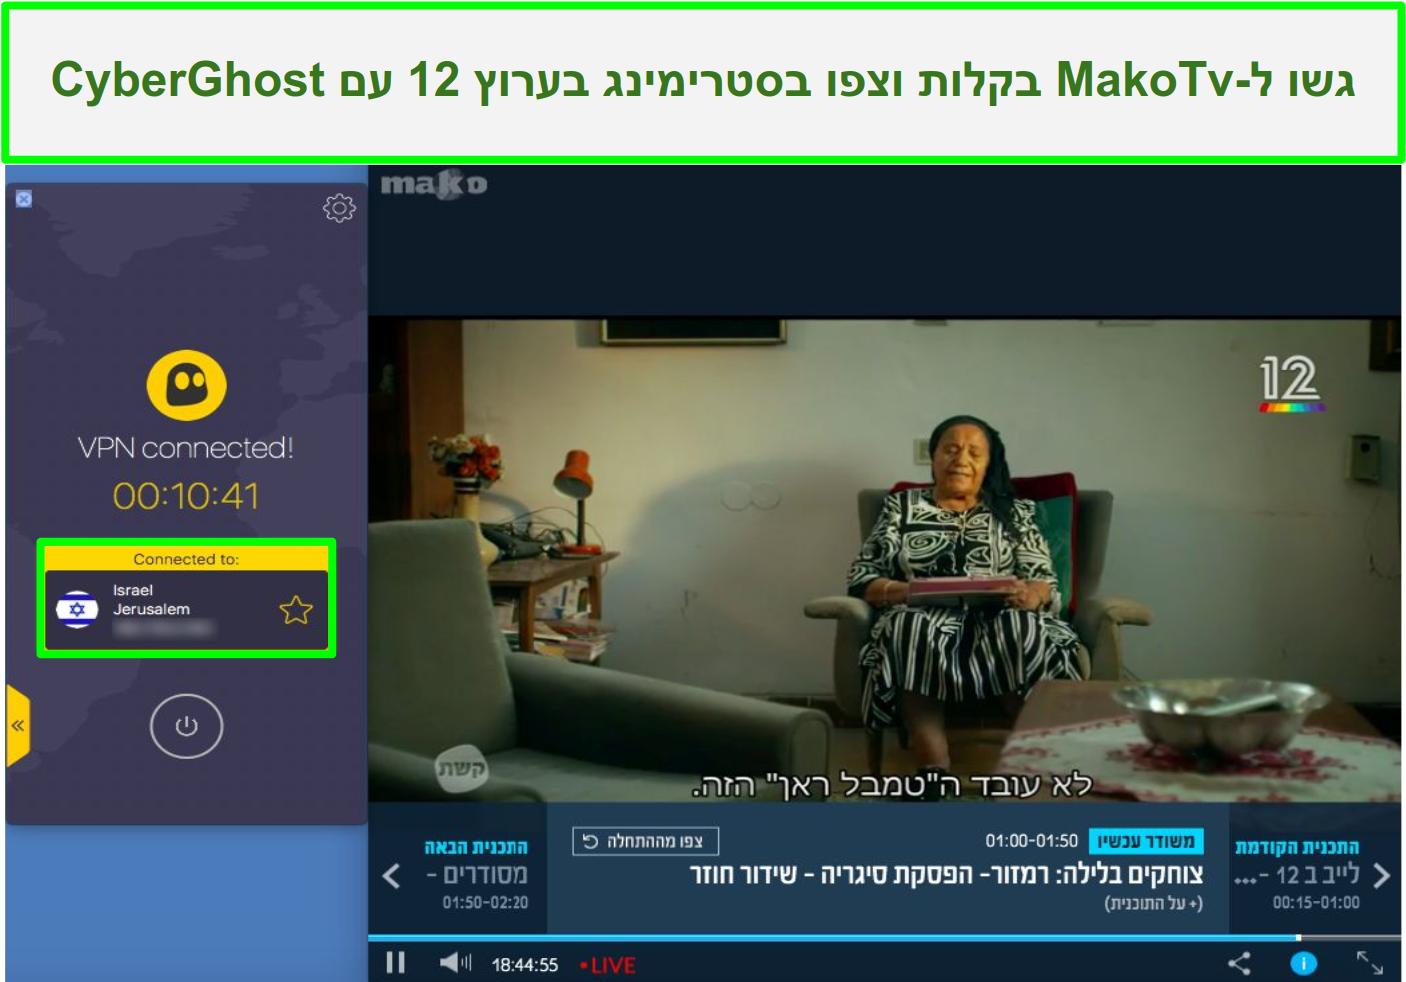 Screenshot of CyberGhost unblocking MakoTV and streaming Channel 12 live